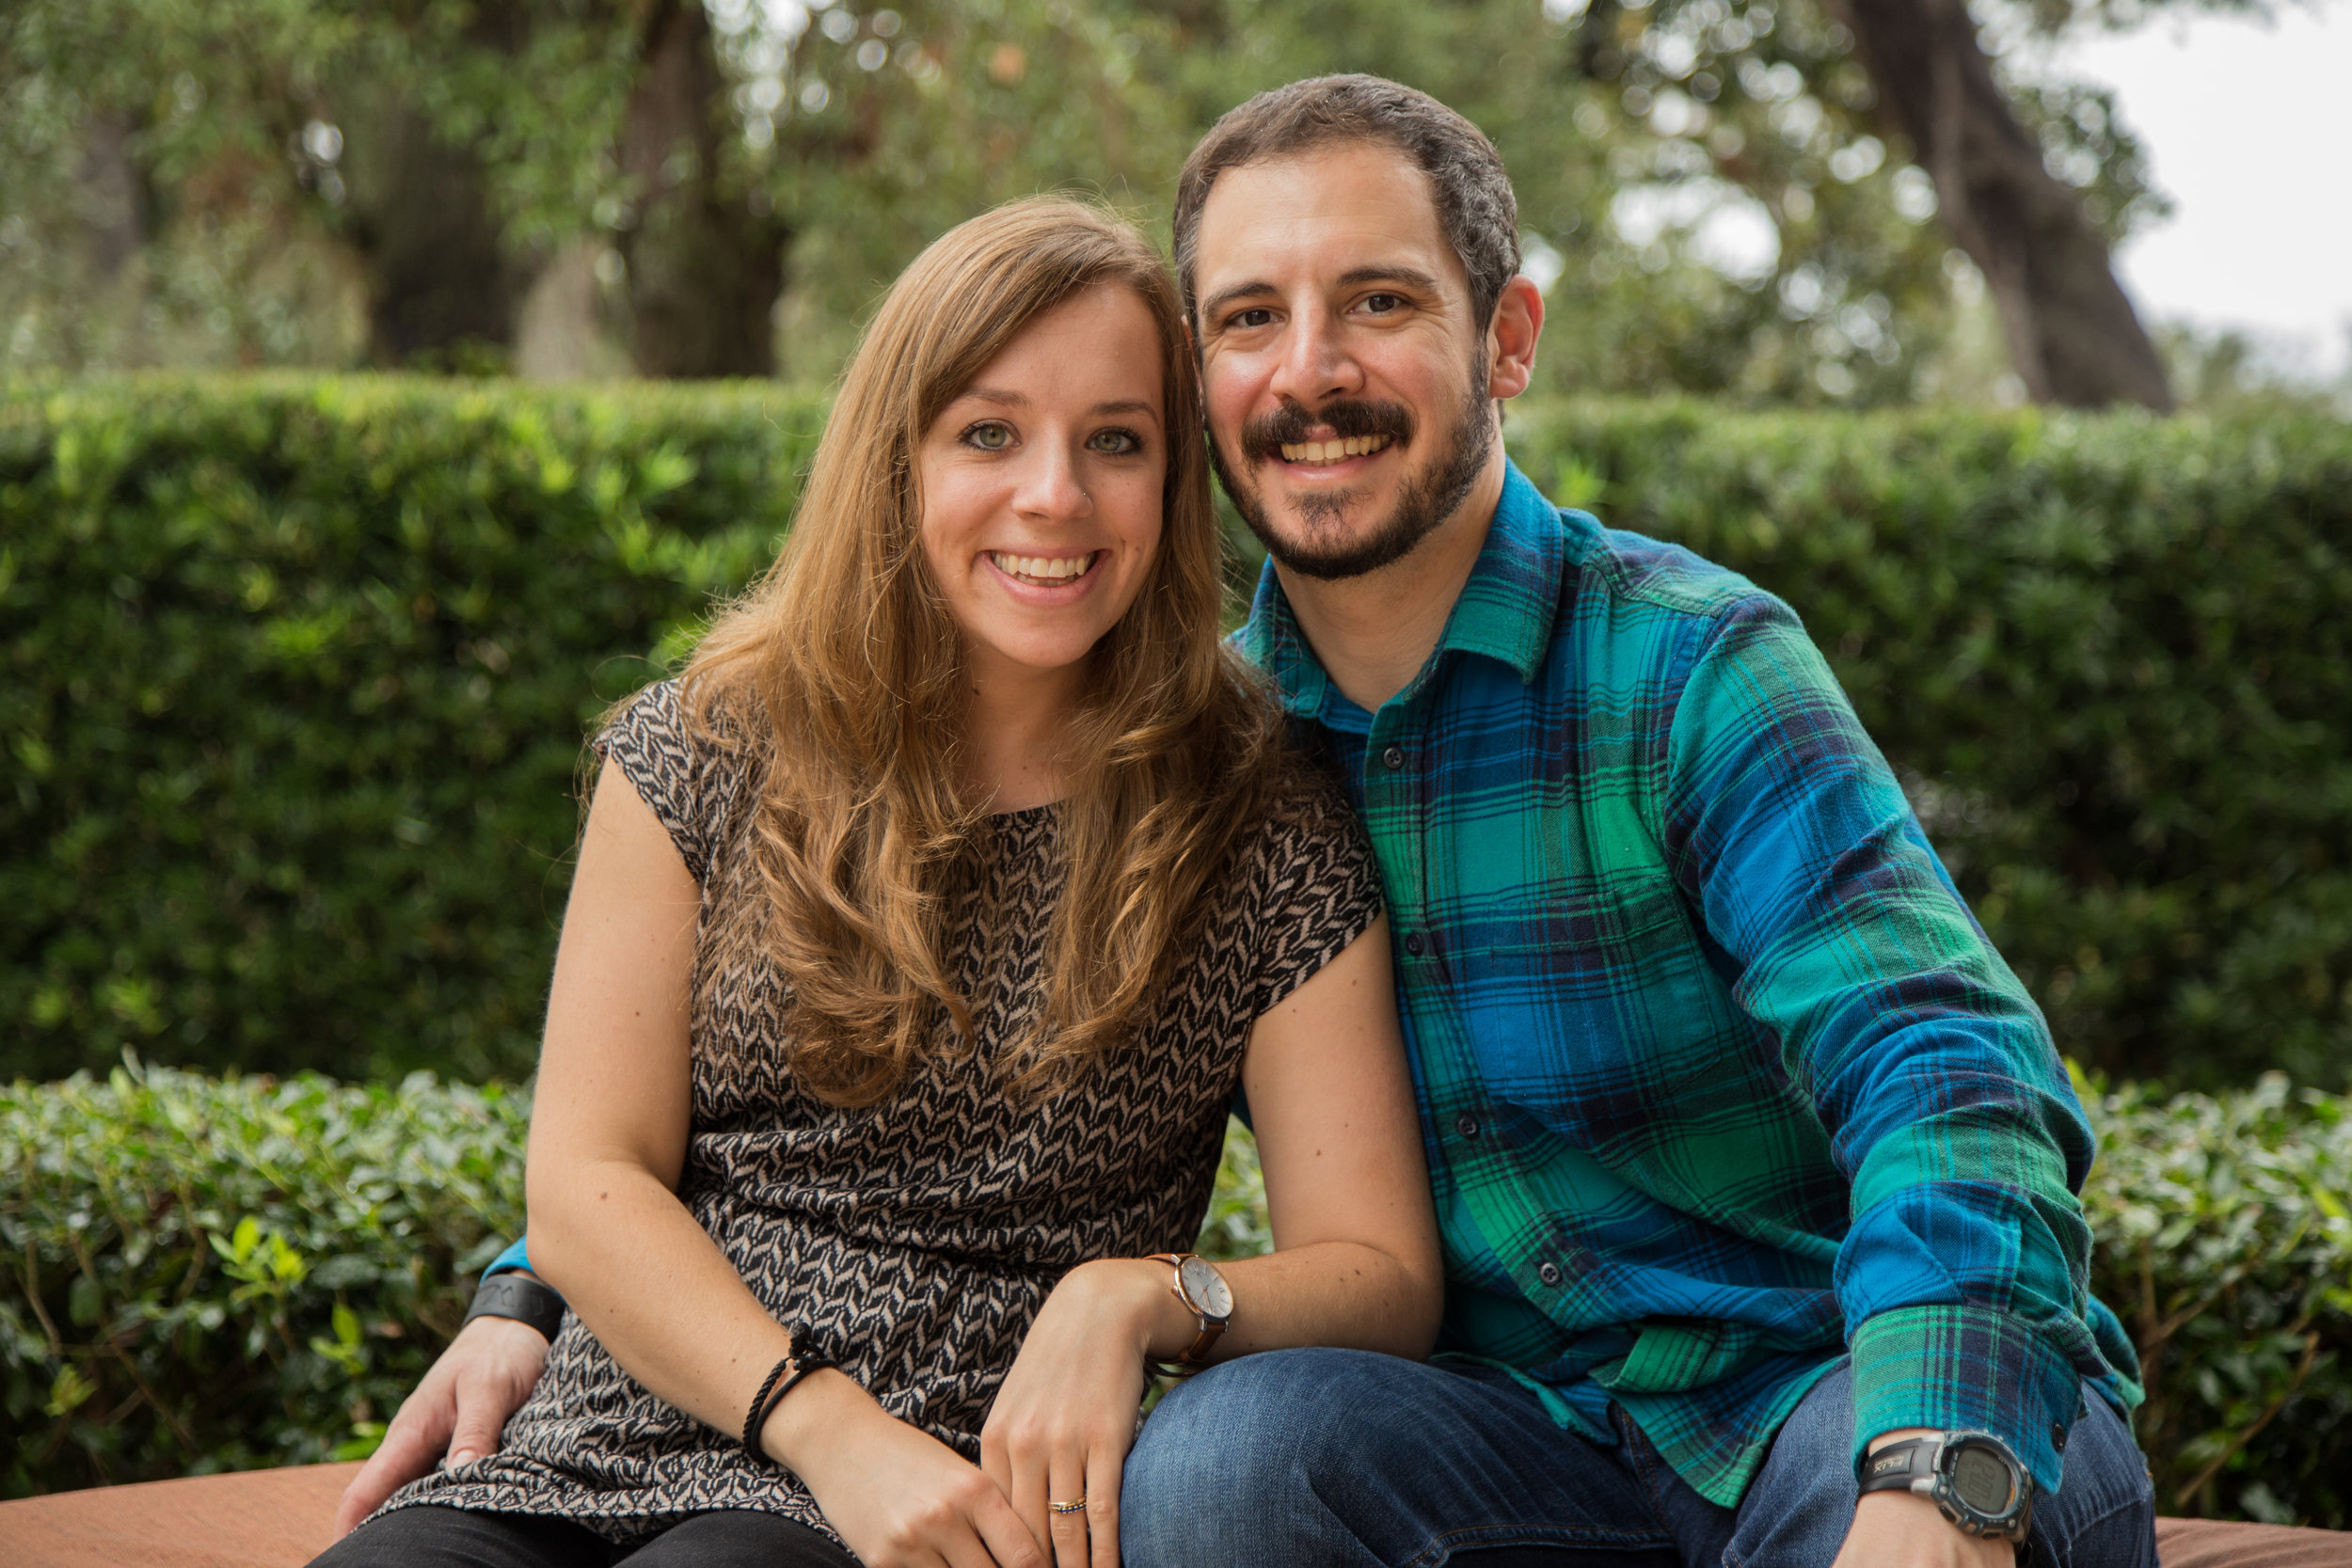 Loving couple hoping to adopt second child through adoption